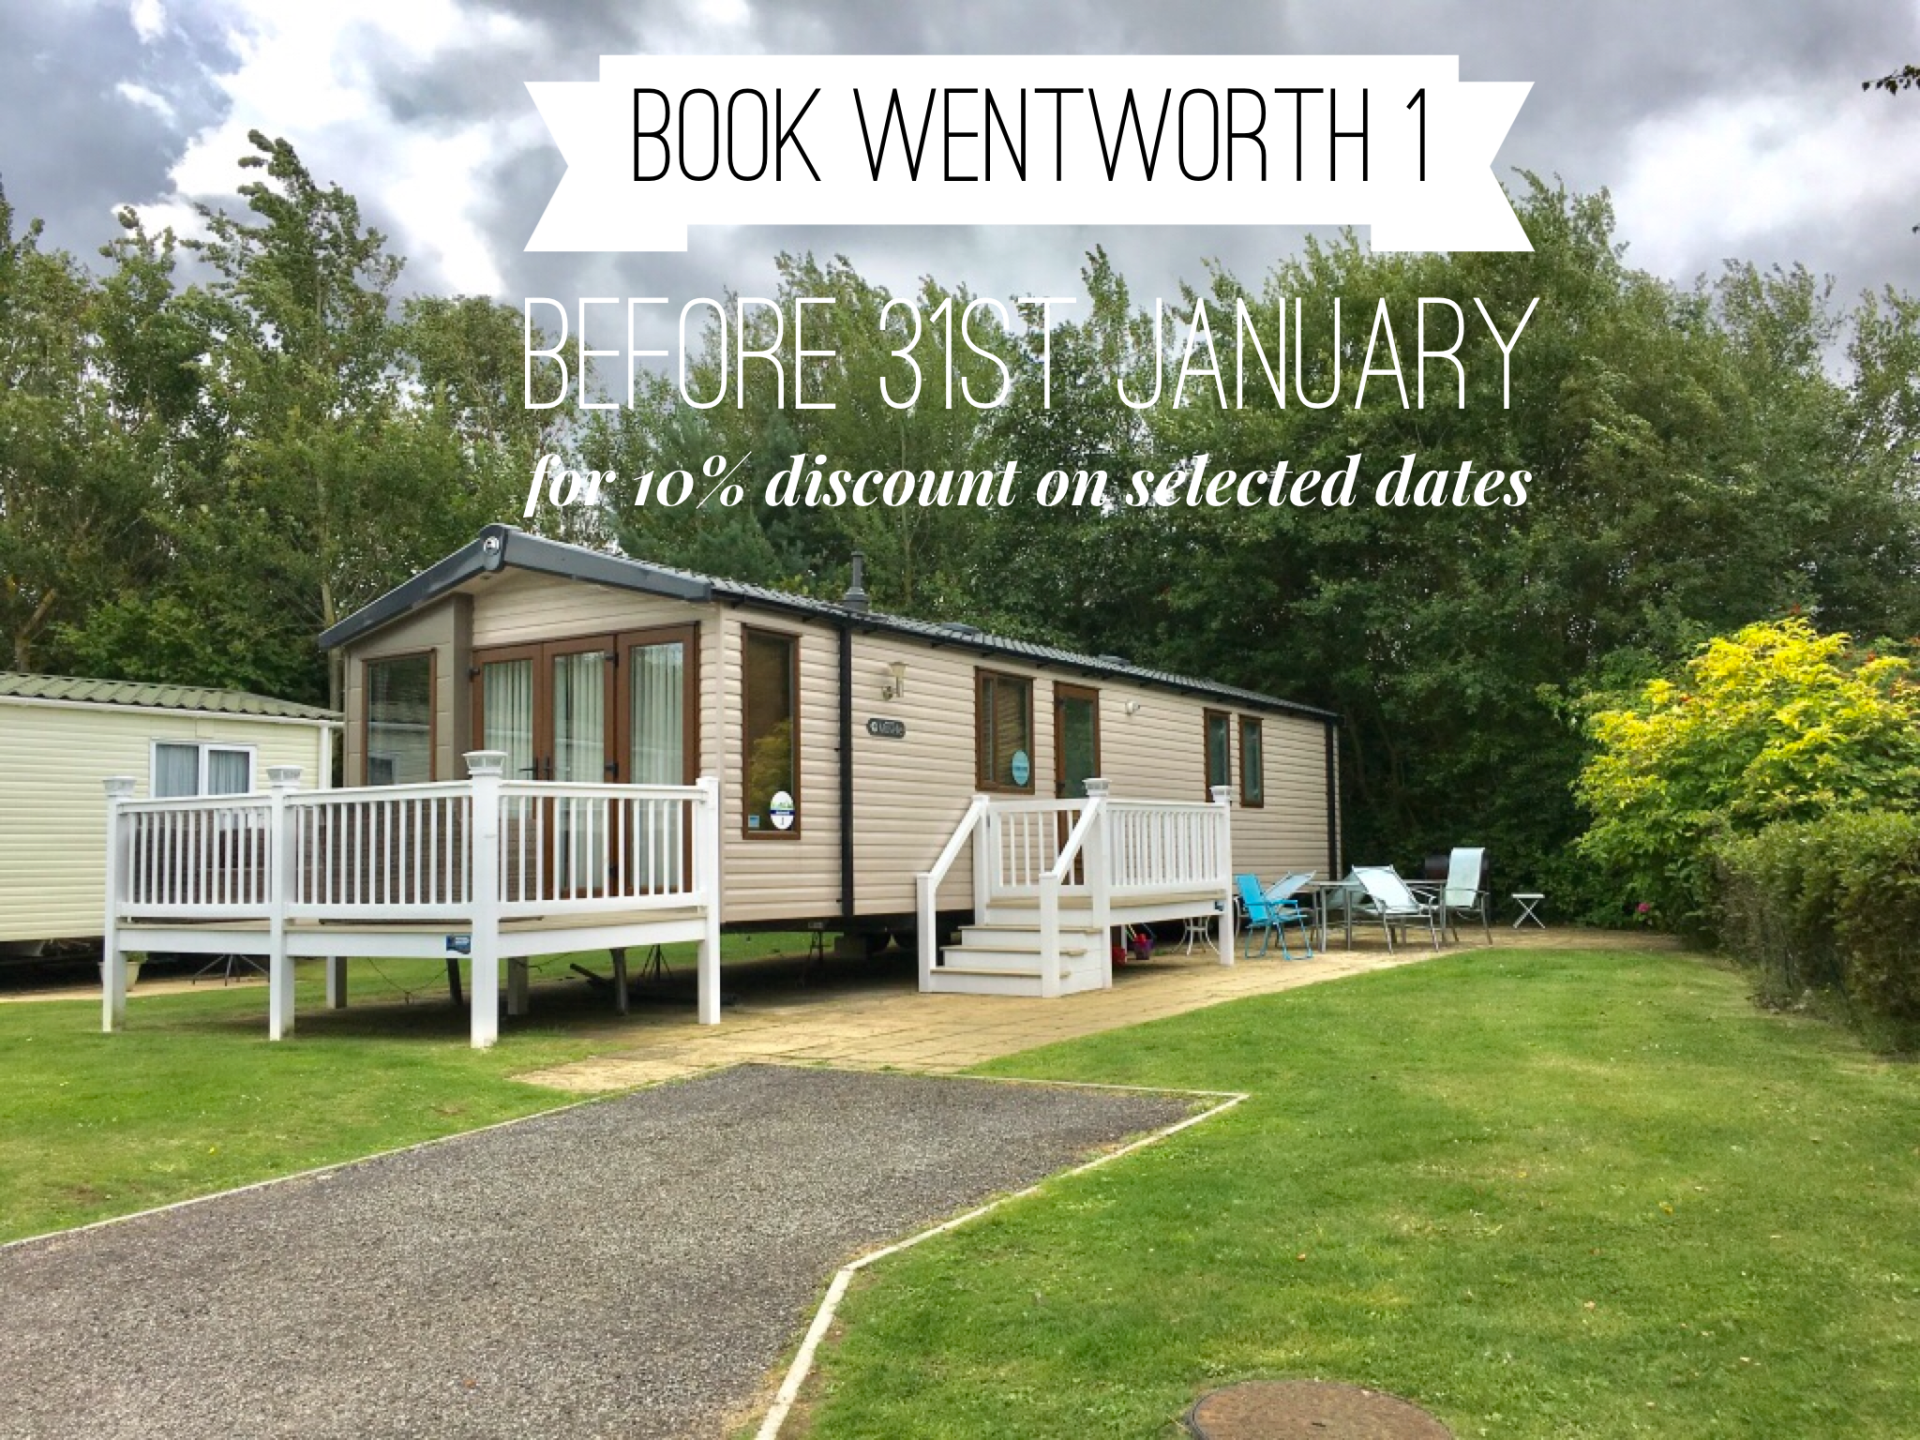 COME AND STAY IN WENTWORTH 1 FOR LESS